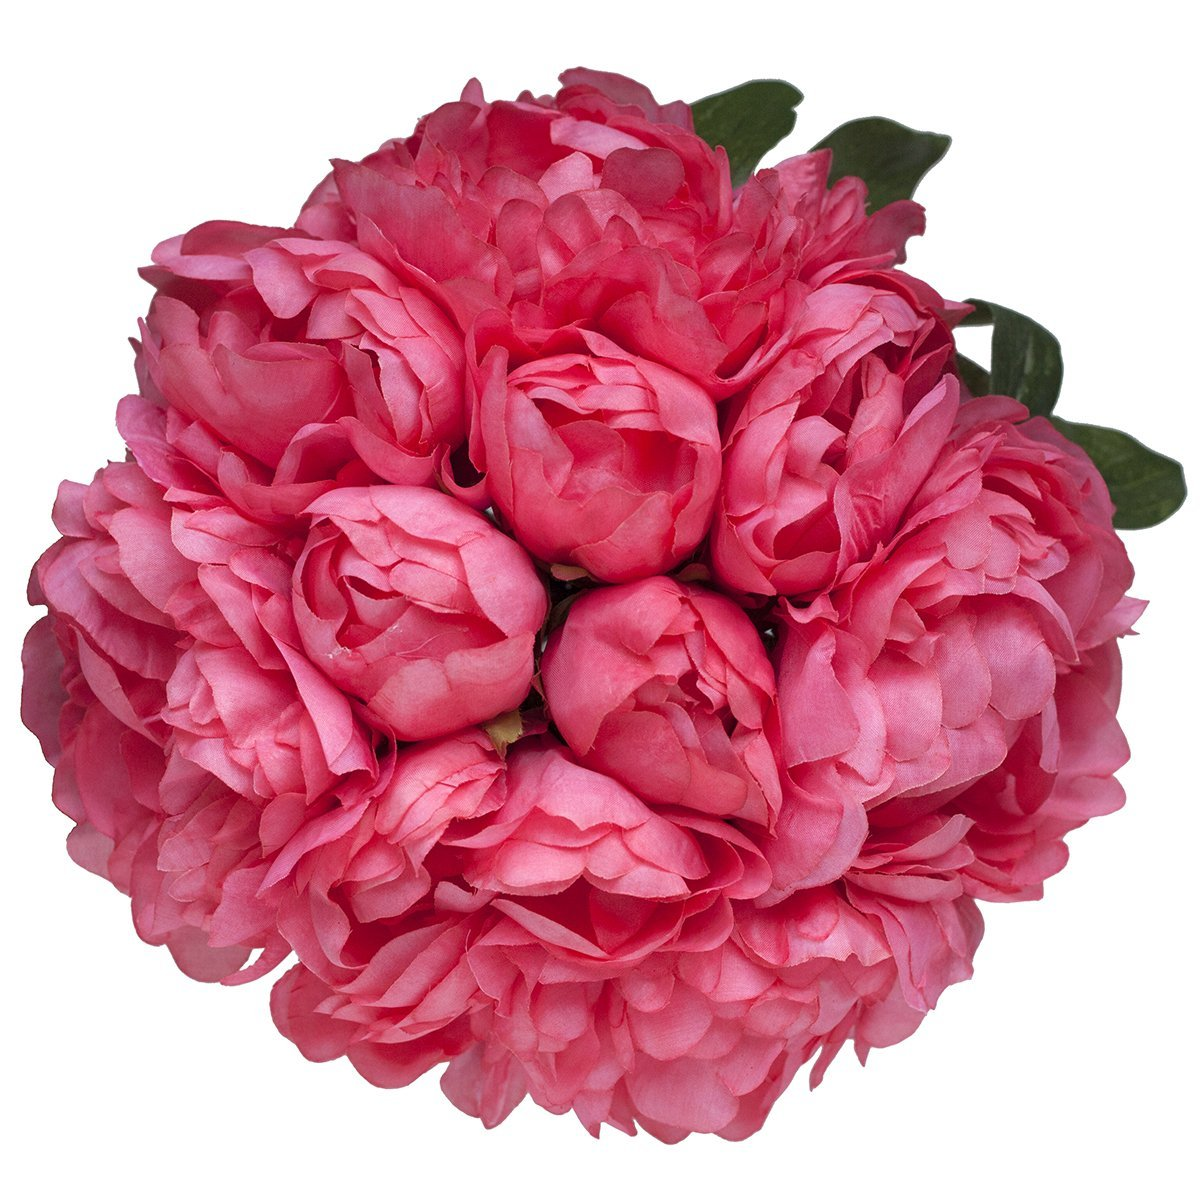 Cheap Silk Coral Peonies Find Silk Coral Peonies Deals On Line At